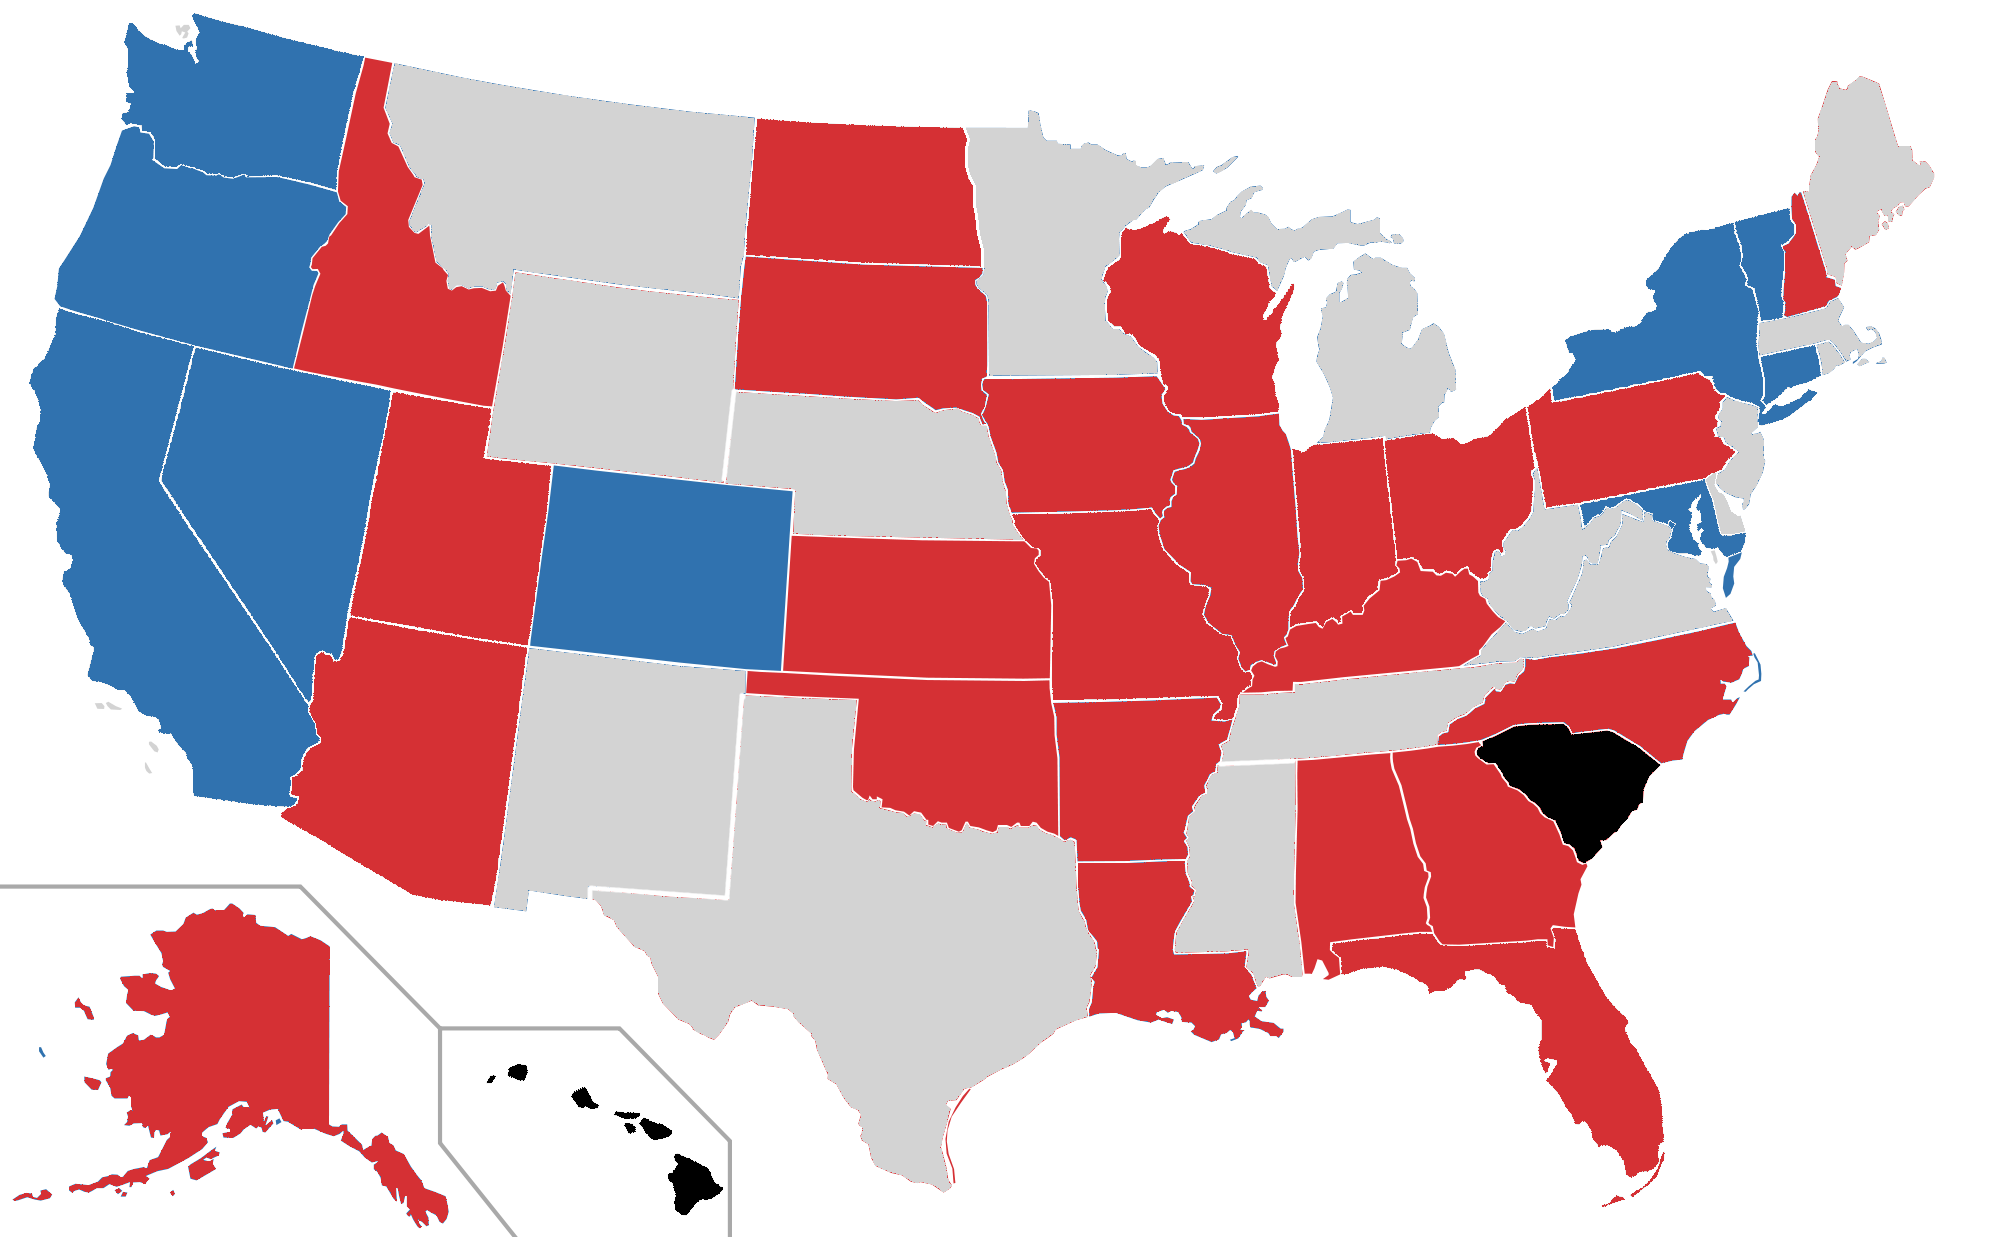 File:2016 US Senate election seats.png - Wikimedia Commons